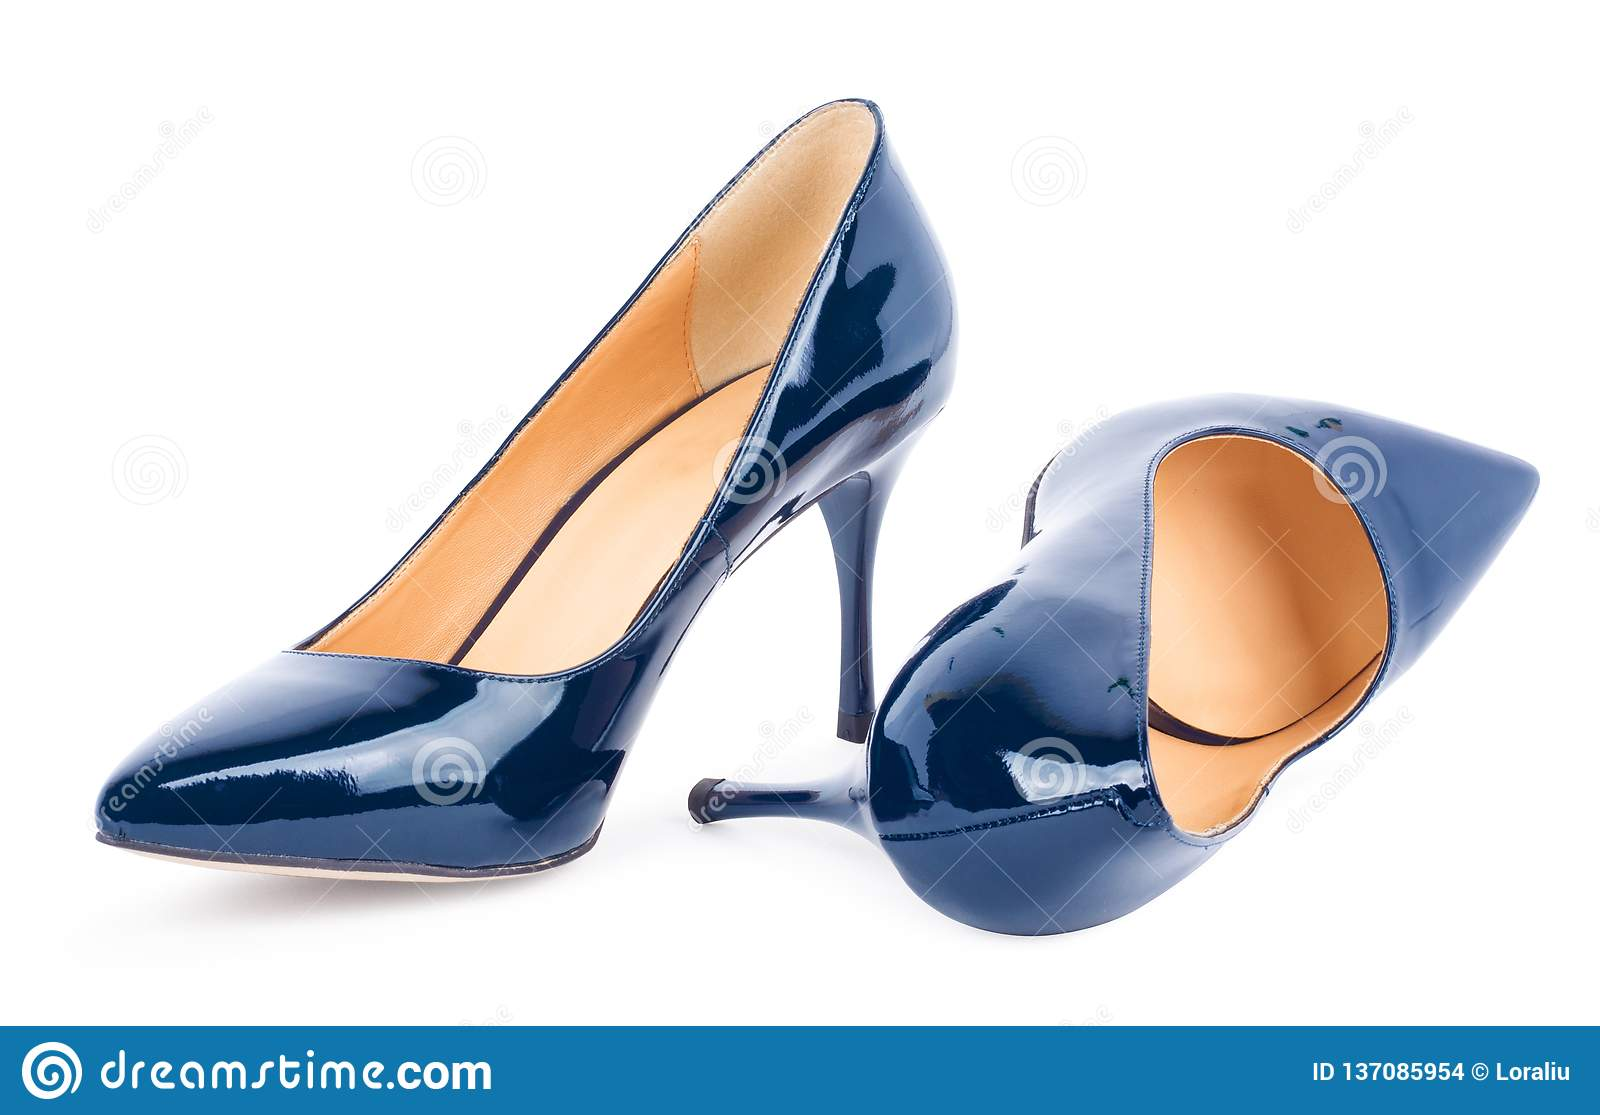 5020dac01e8 Beautiful Blue Classic Women Shoes Isolated On Background Stock ...